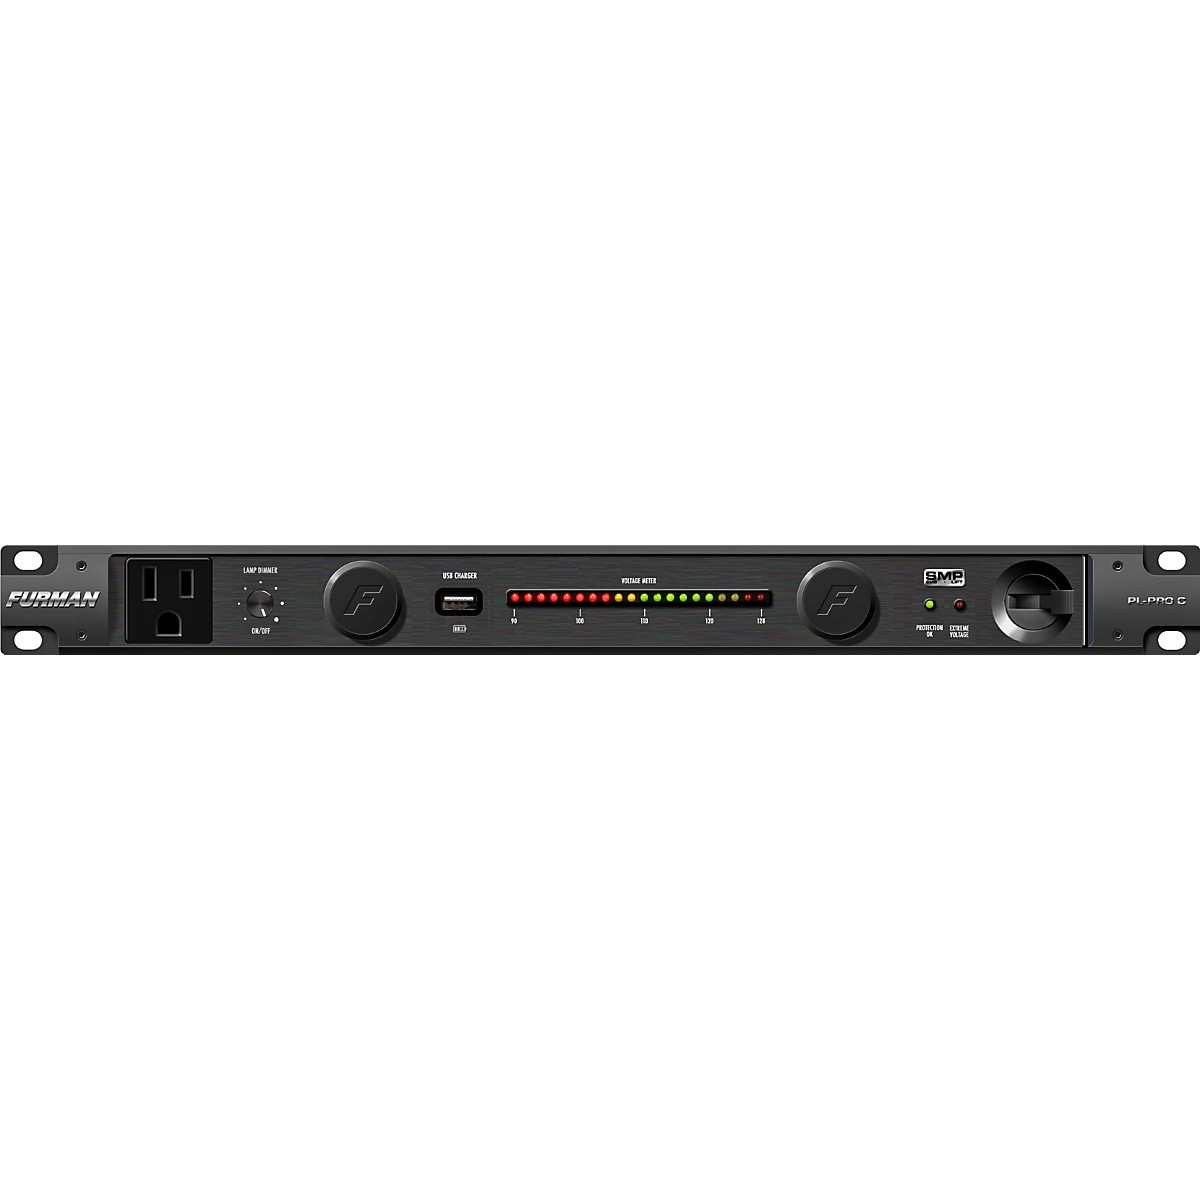 Furman PL-Pro C Power Conditioner